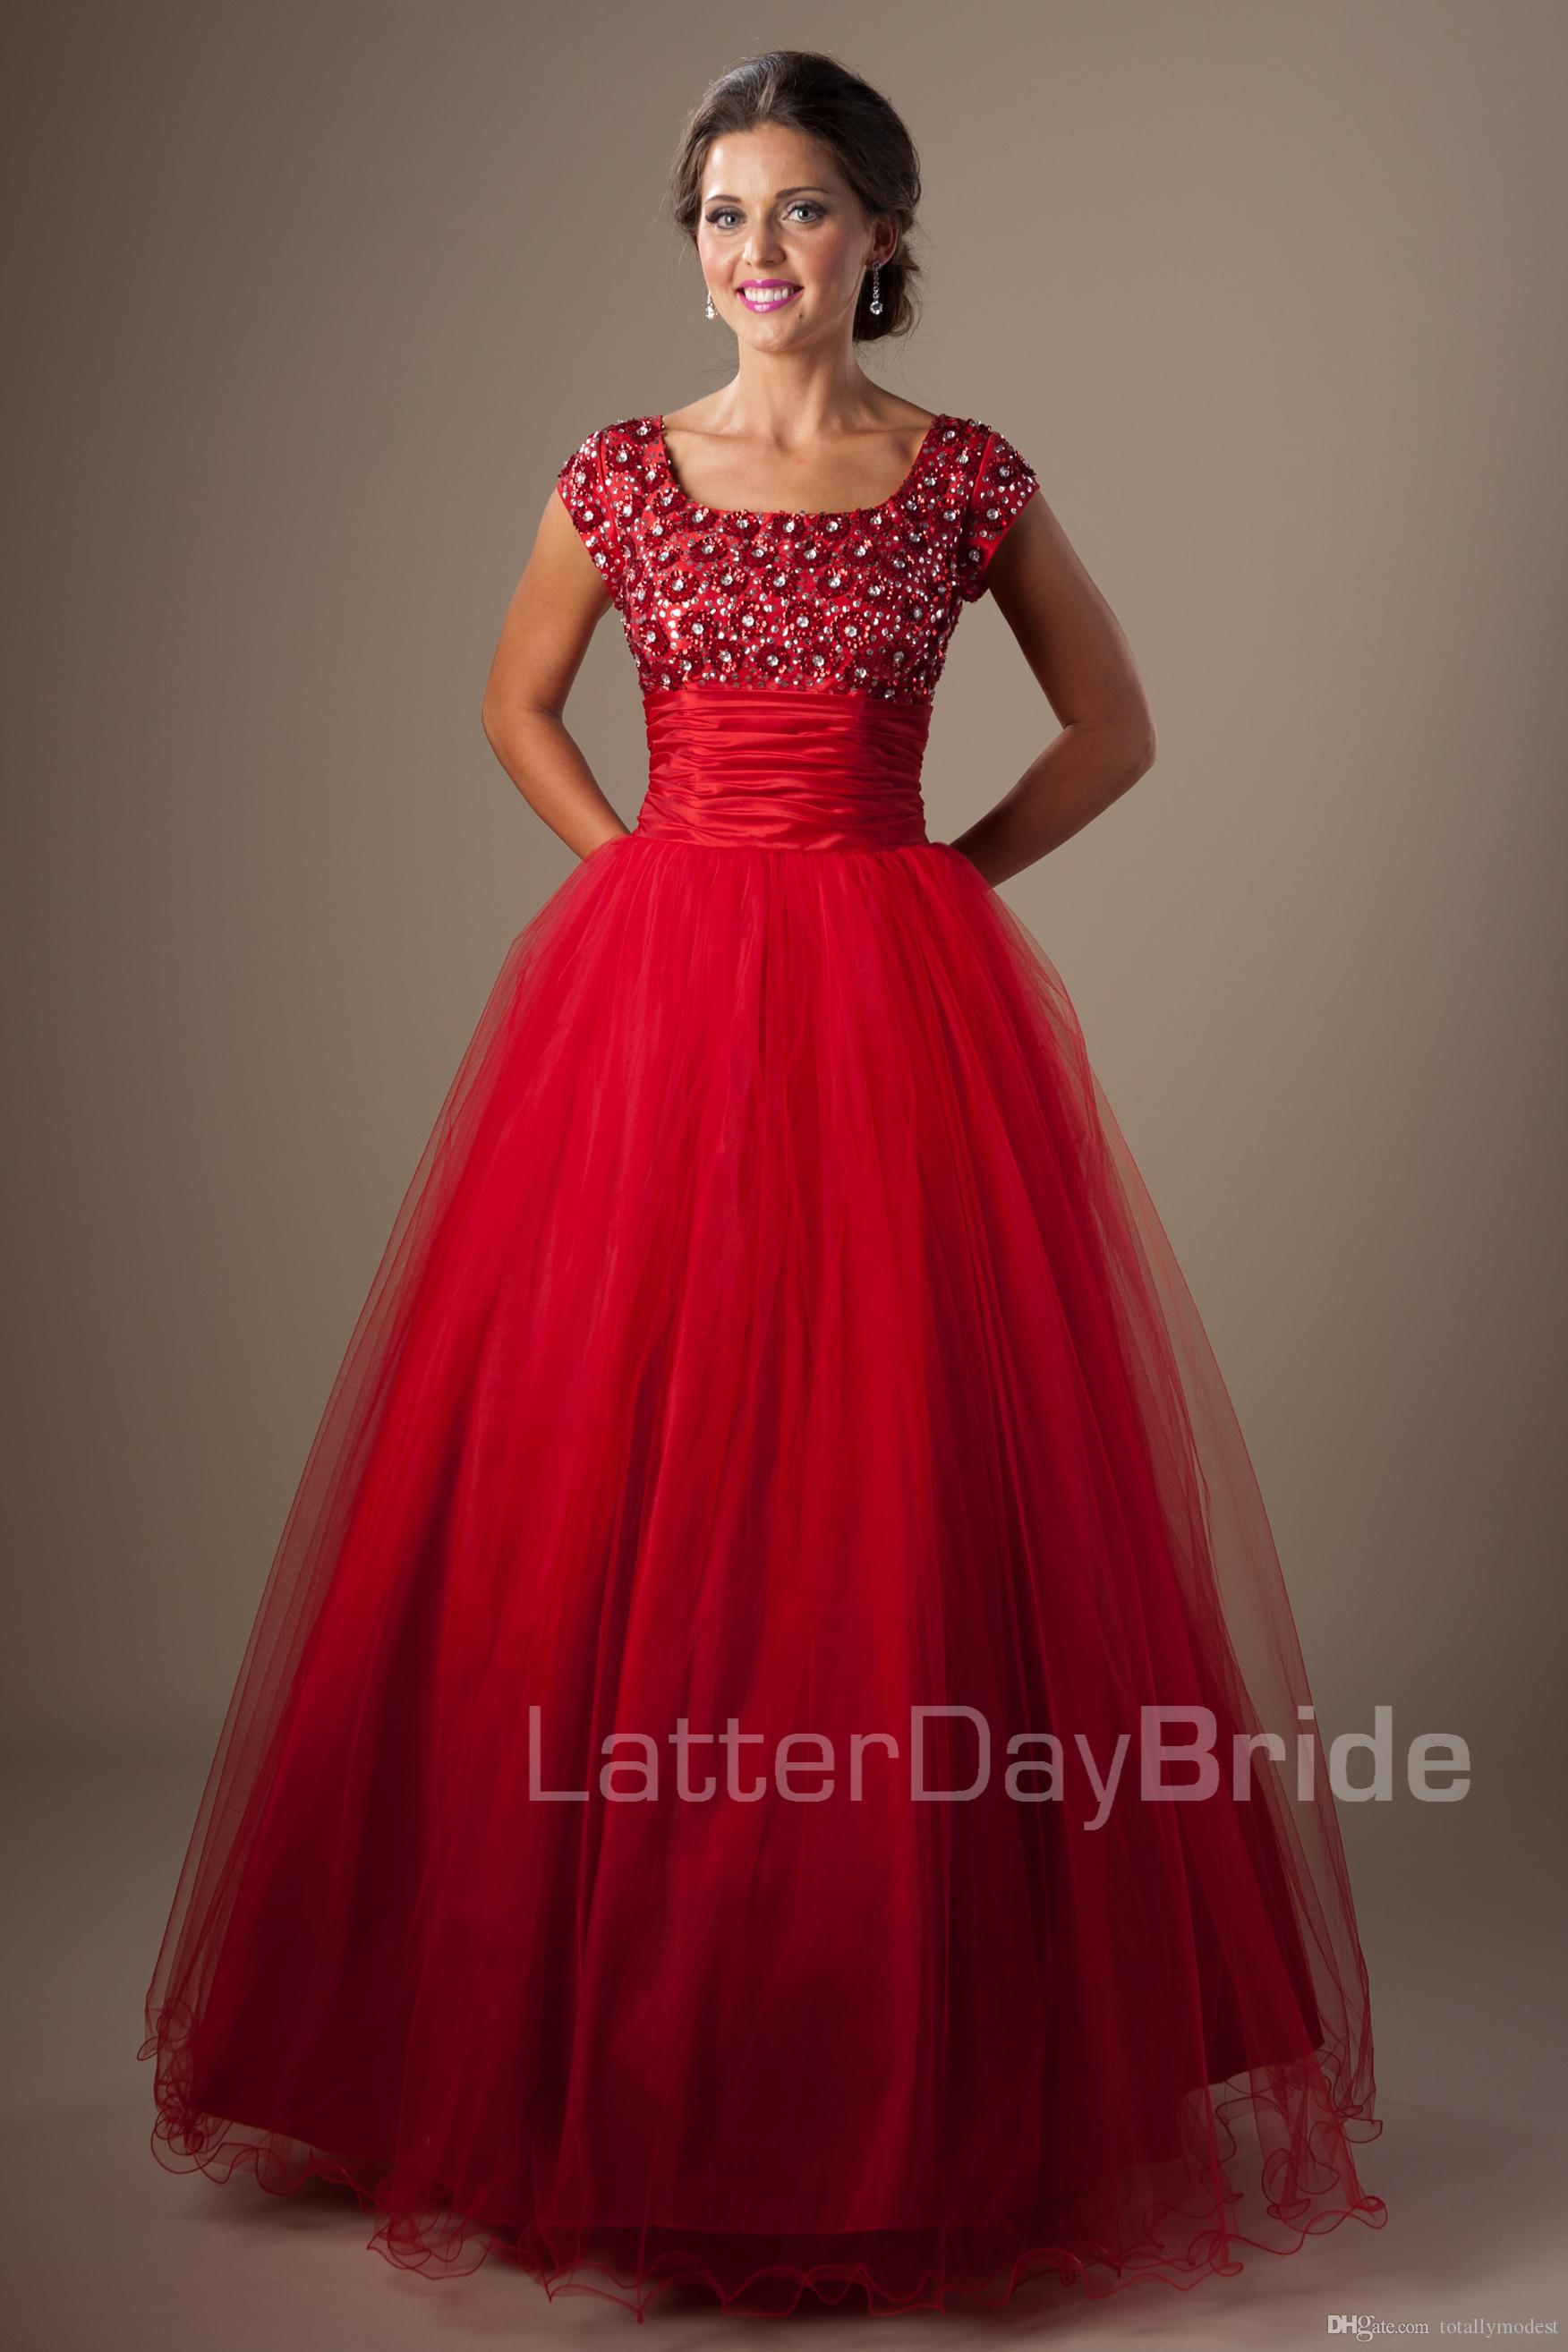 Red Ball Gown Modest Prom Dresses With Cap Sleeves Square Short Sleeves Prom Gowns Puffy A-line High School Formal Party Gowns Cheap